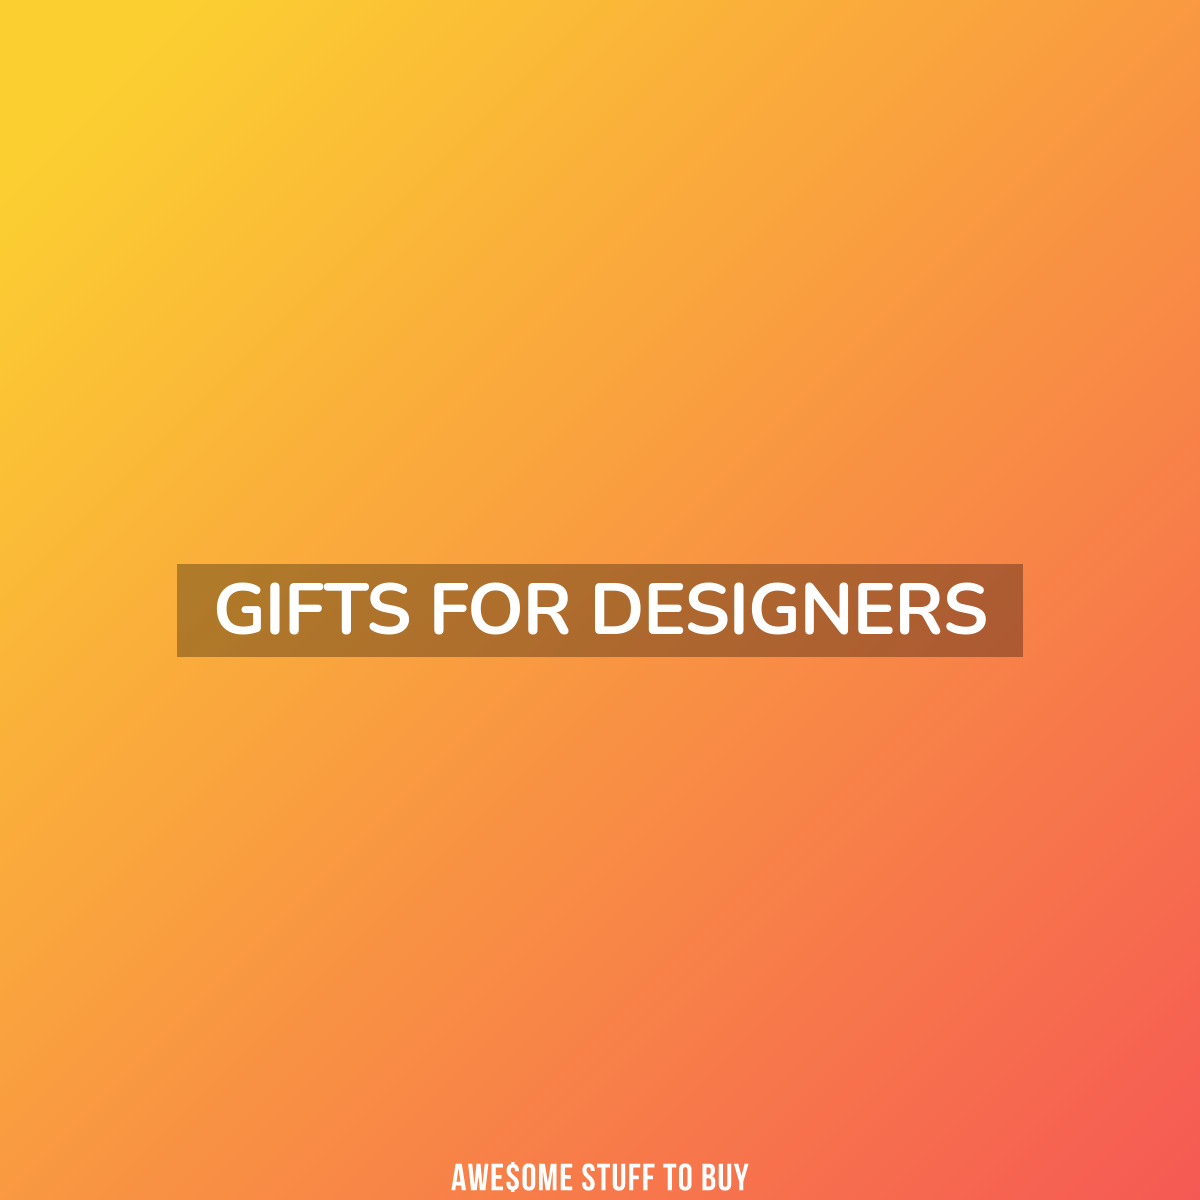 gifts-for-designers // Awesome Stuff to Buy